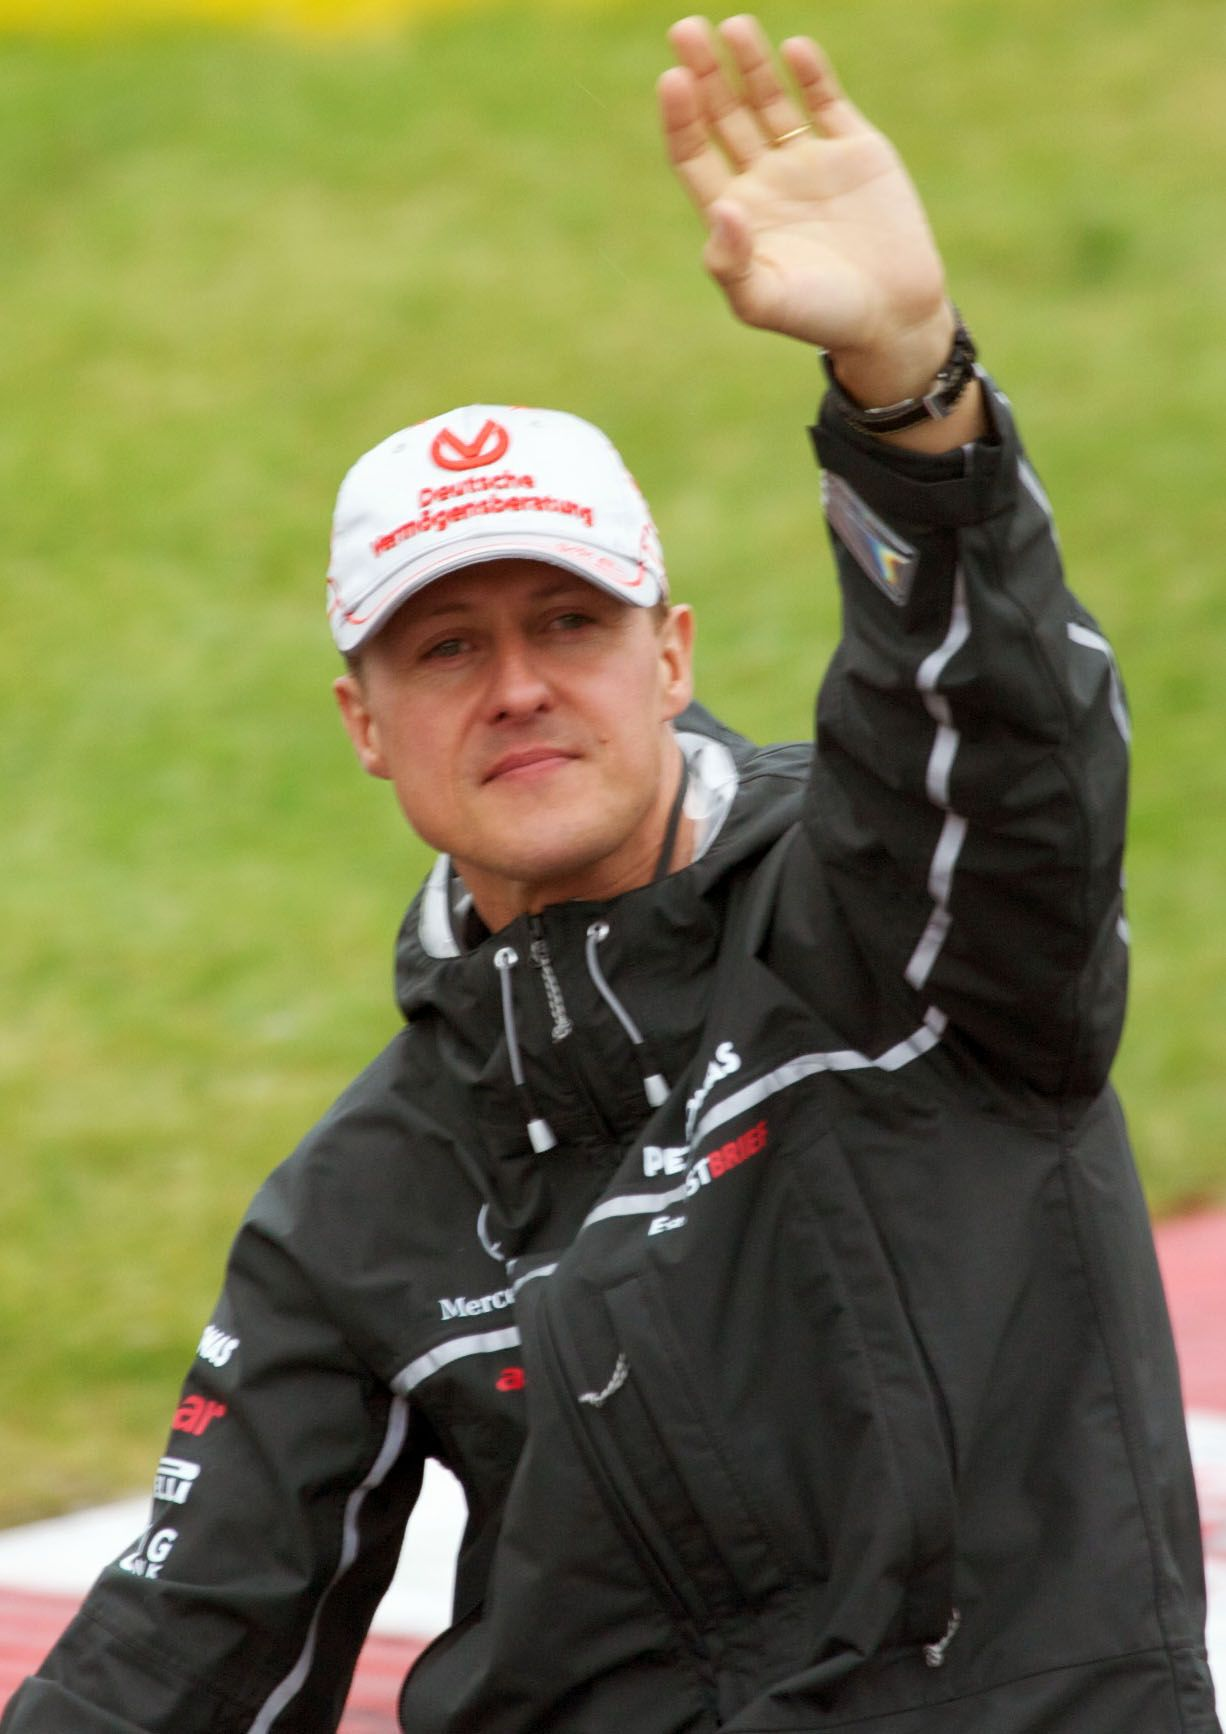 Michael Schumacher News: Wife Celebrates 20th Anniversary - http://www.australianetworknews.com/michael-schumacher-news-wife-celebrates-20th-anniversary/